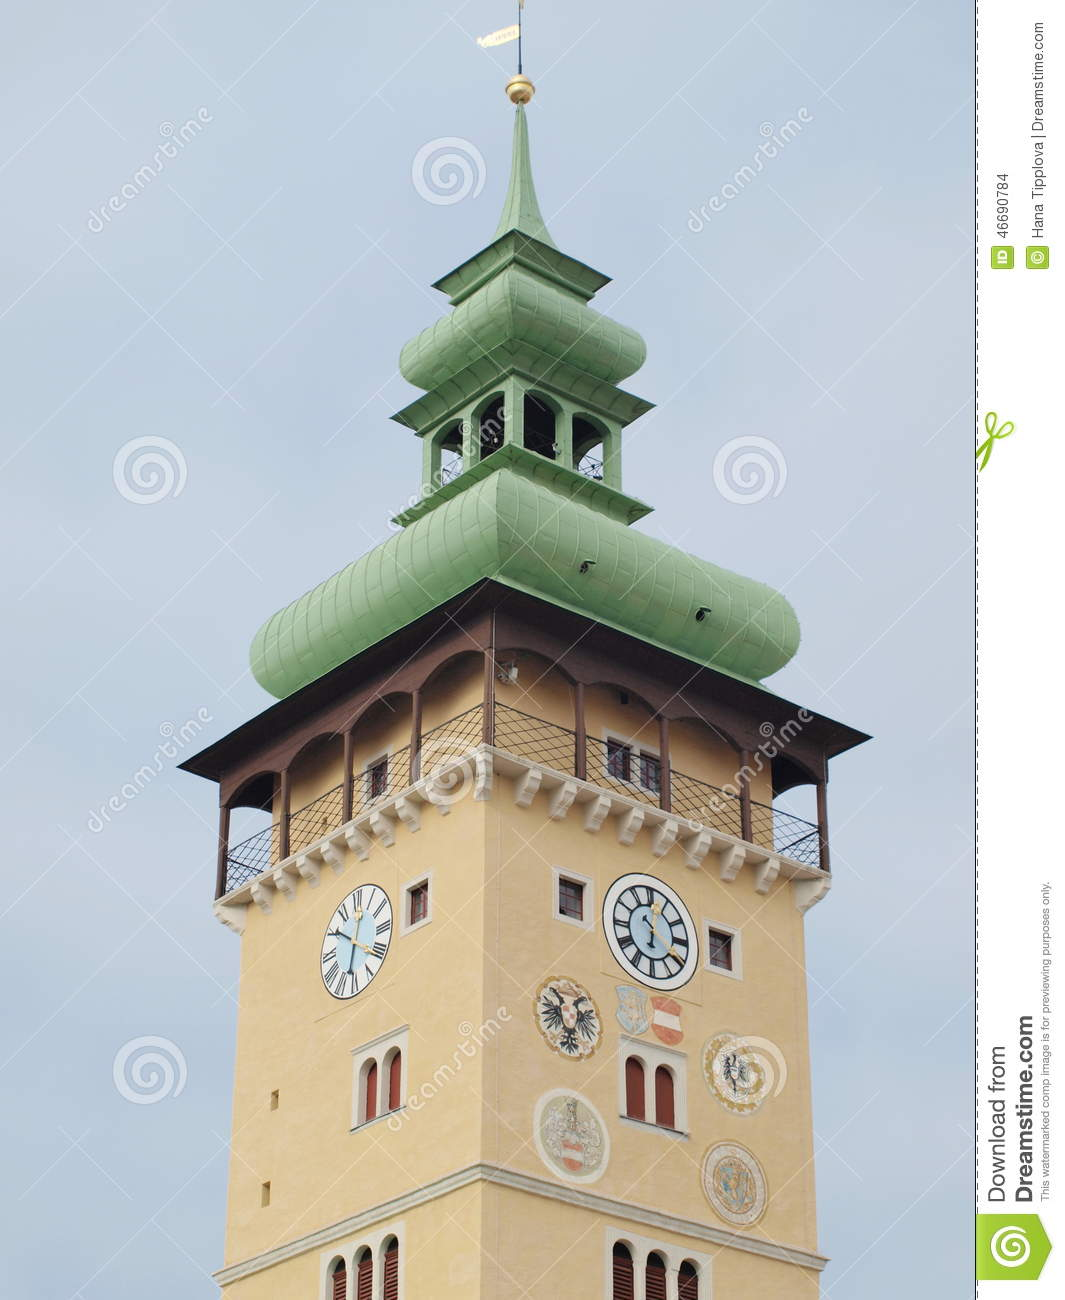 Town Hall Tower, the city of Retz